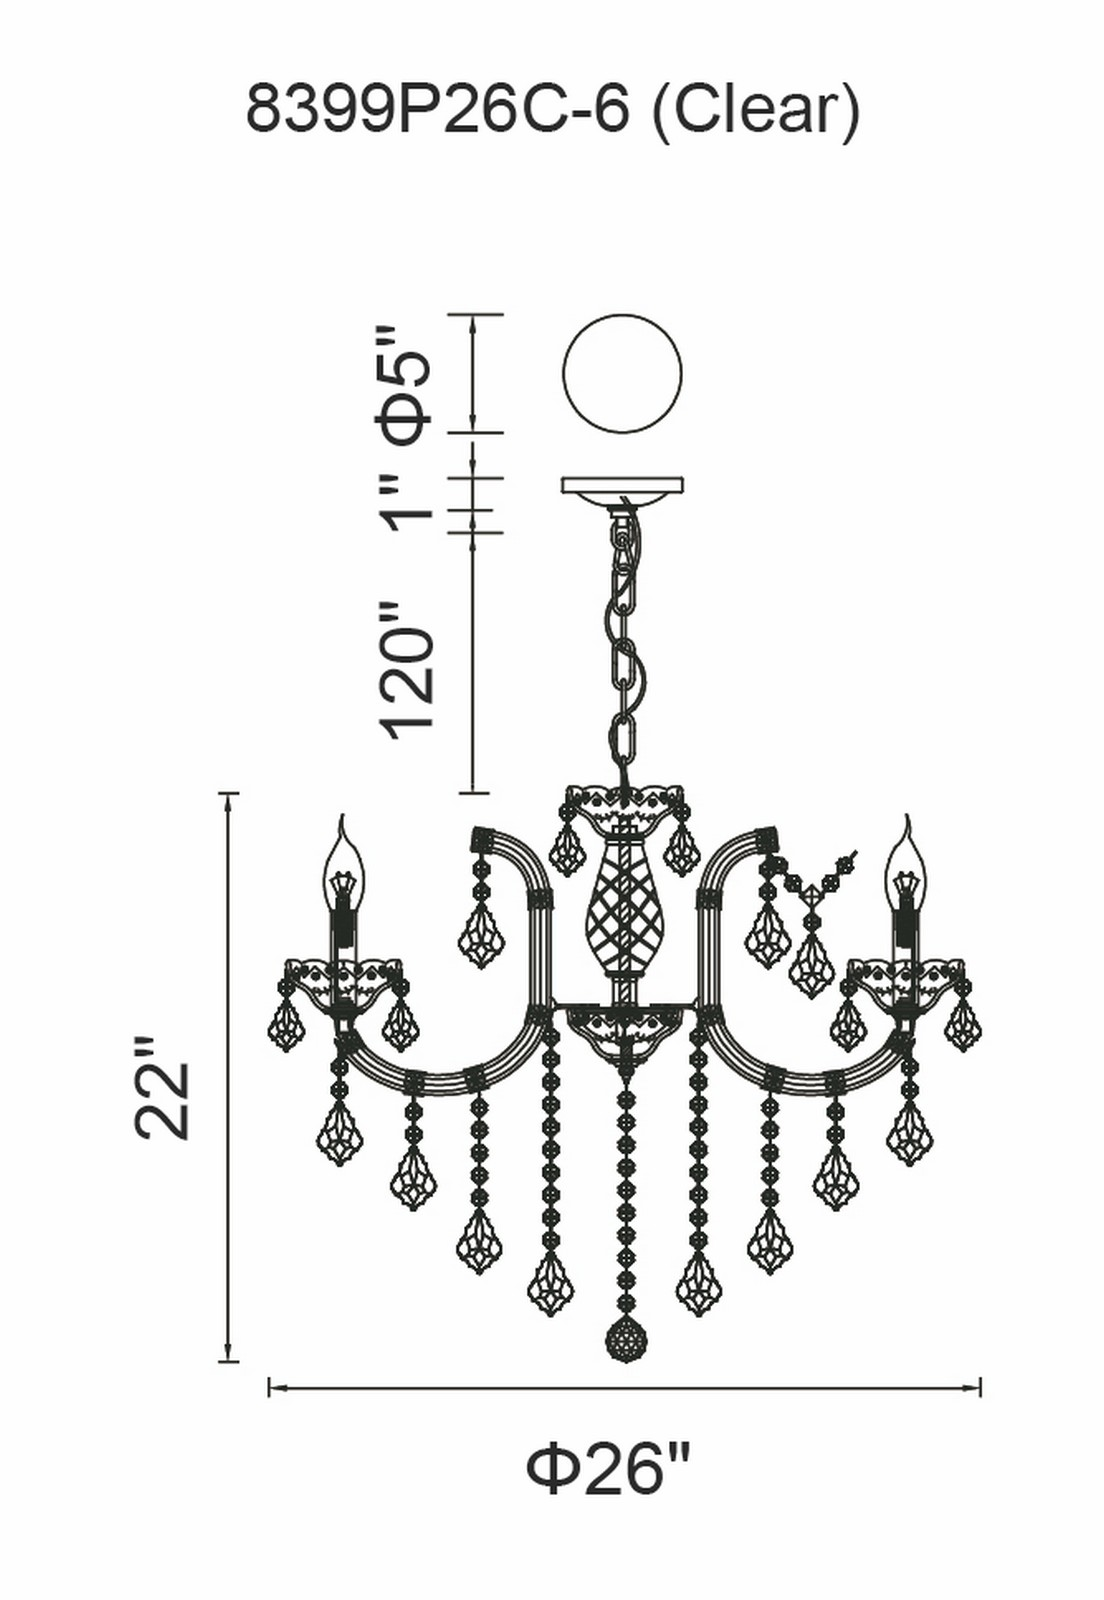 CWI Lighting Riley 6 Light Up Chandelier With Chrome Finish Model: 8399P26C-6 (CLEAR) Line Drawing